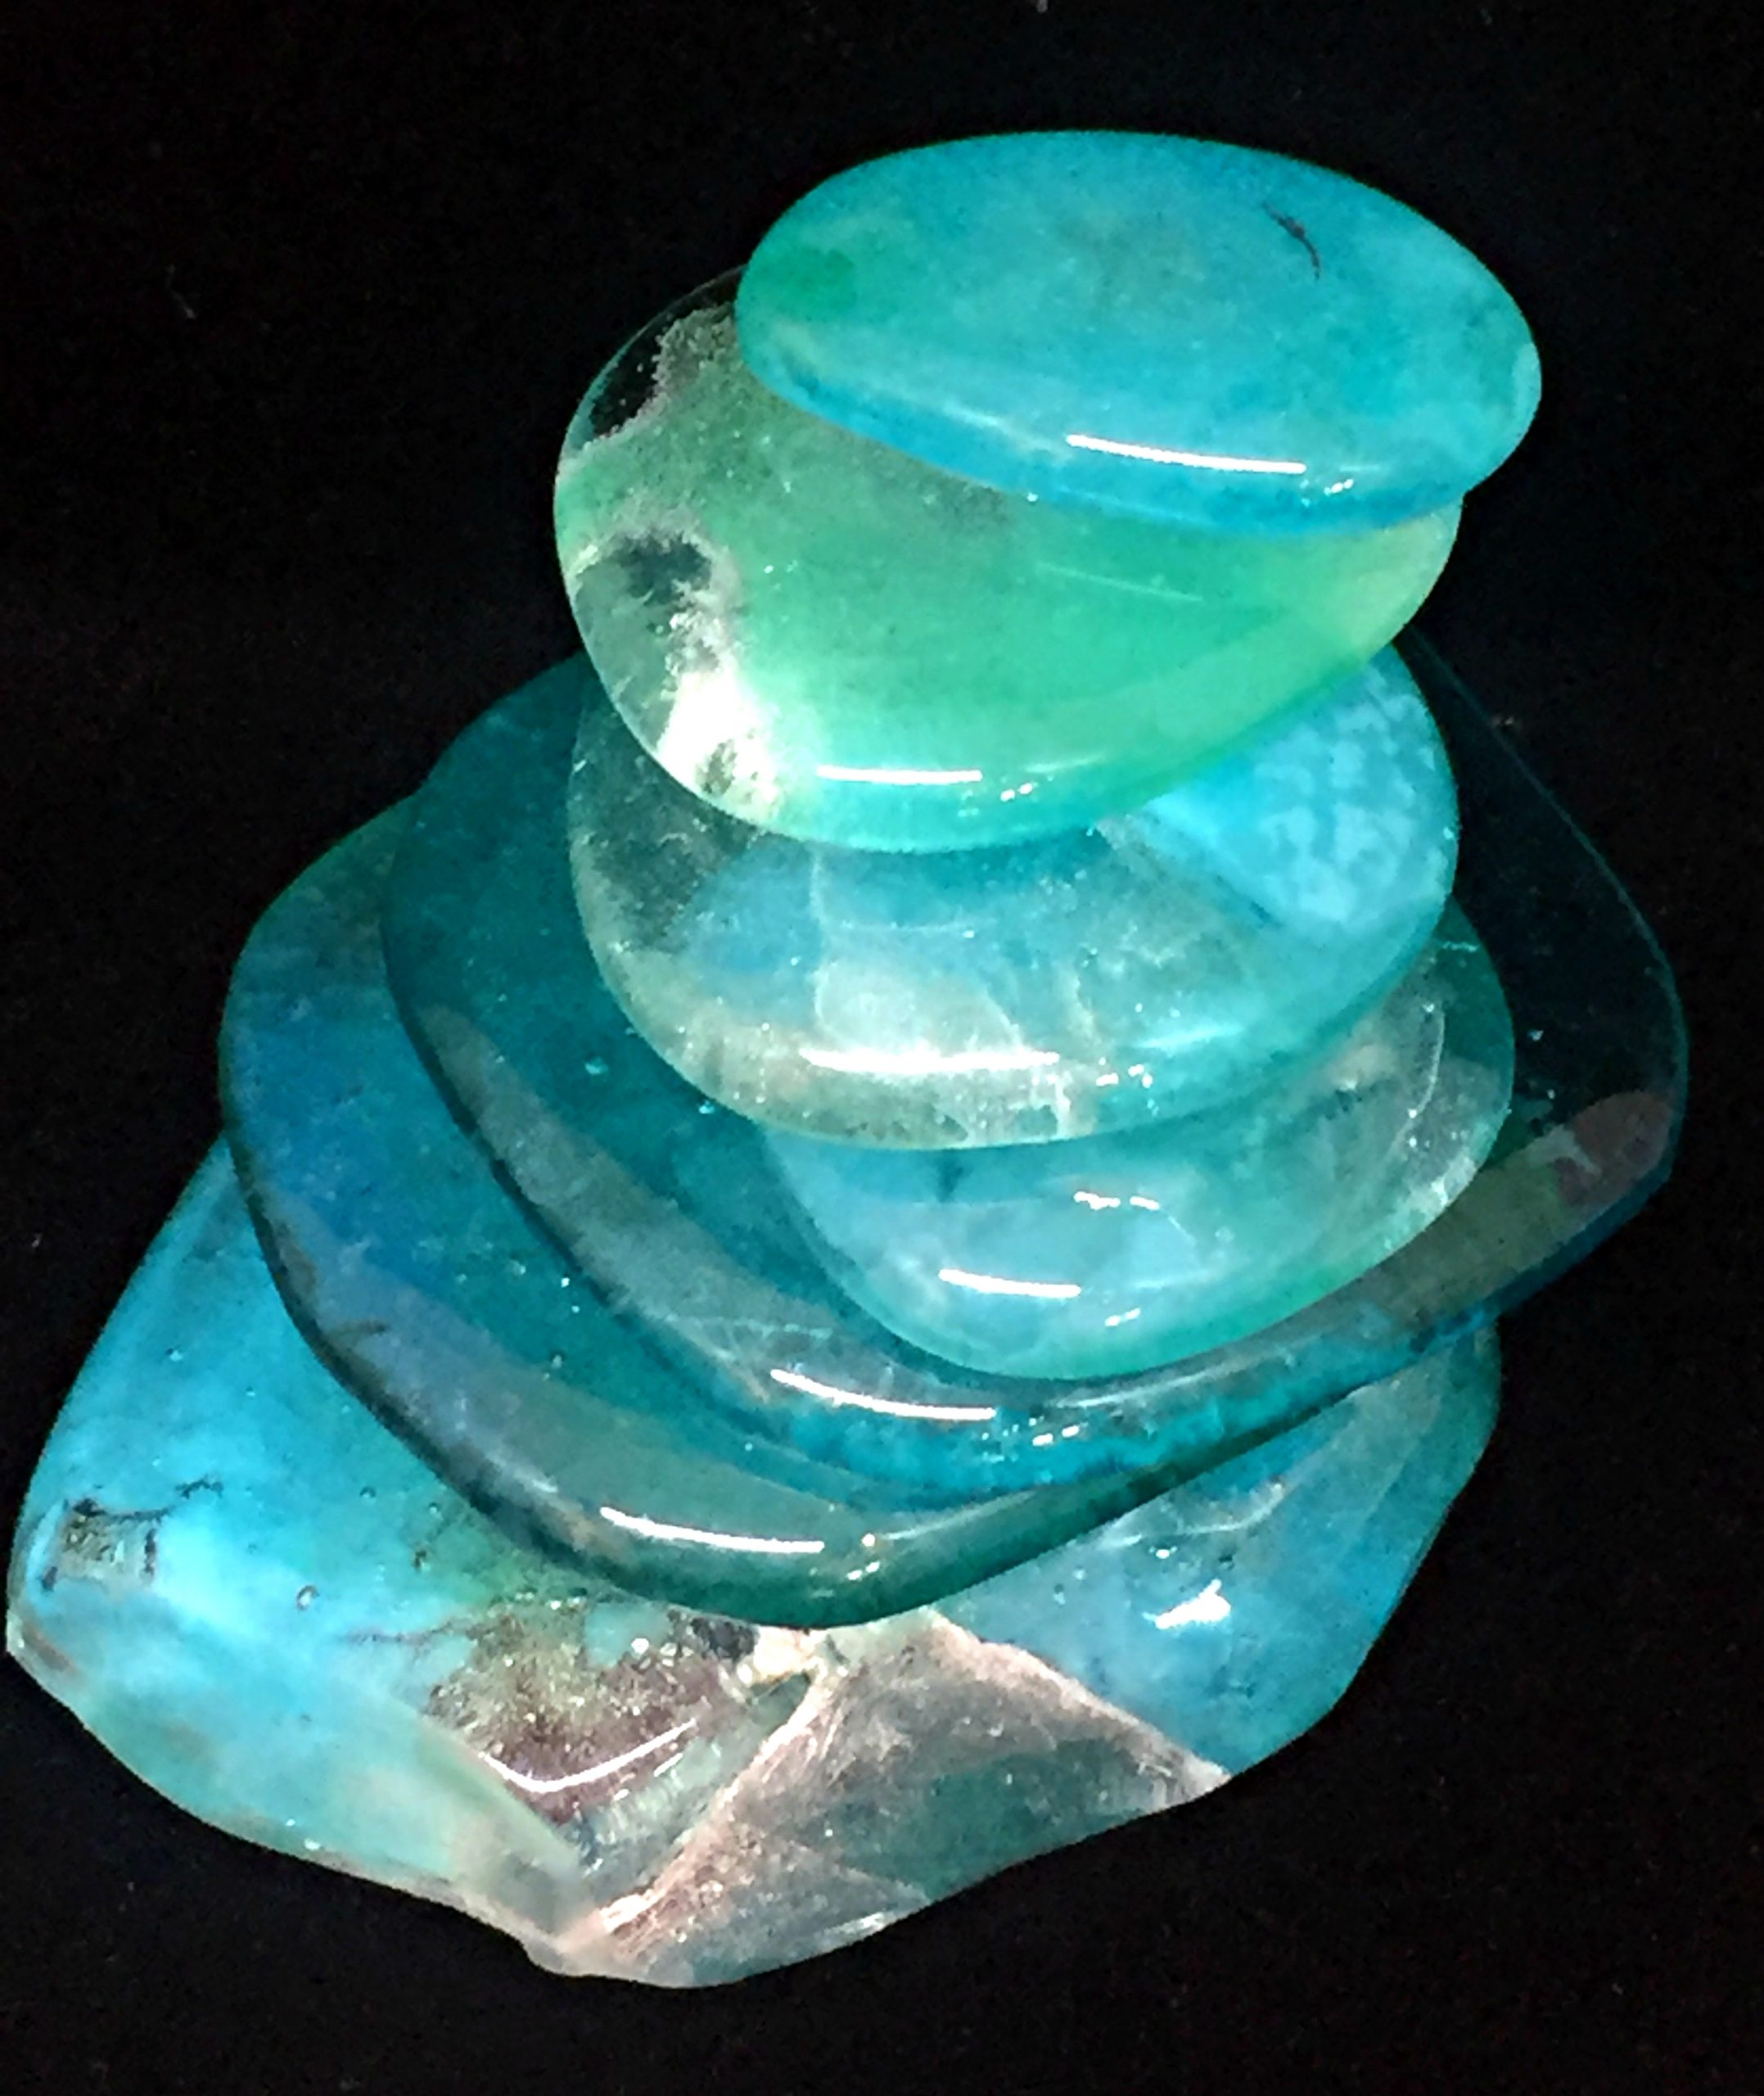 Cast Glass Rocky Mountain Cairn 3 sculpture by Heather Cuell | Effusion Art Gallery + Cast Glass Studio, Invermere BC